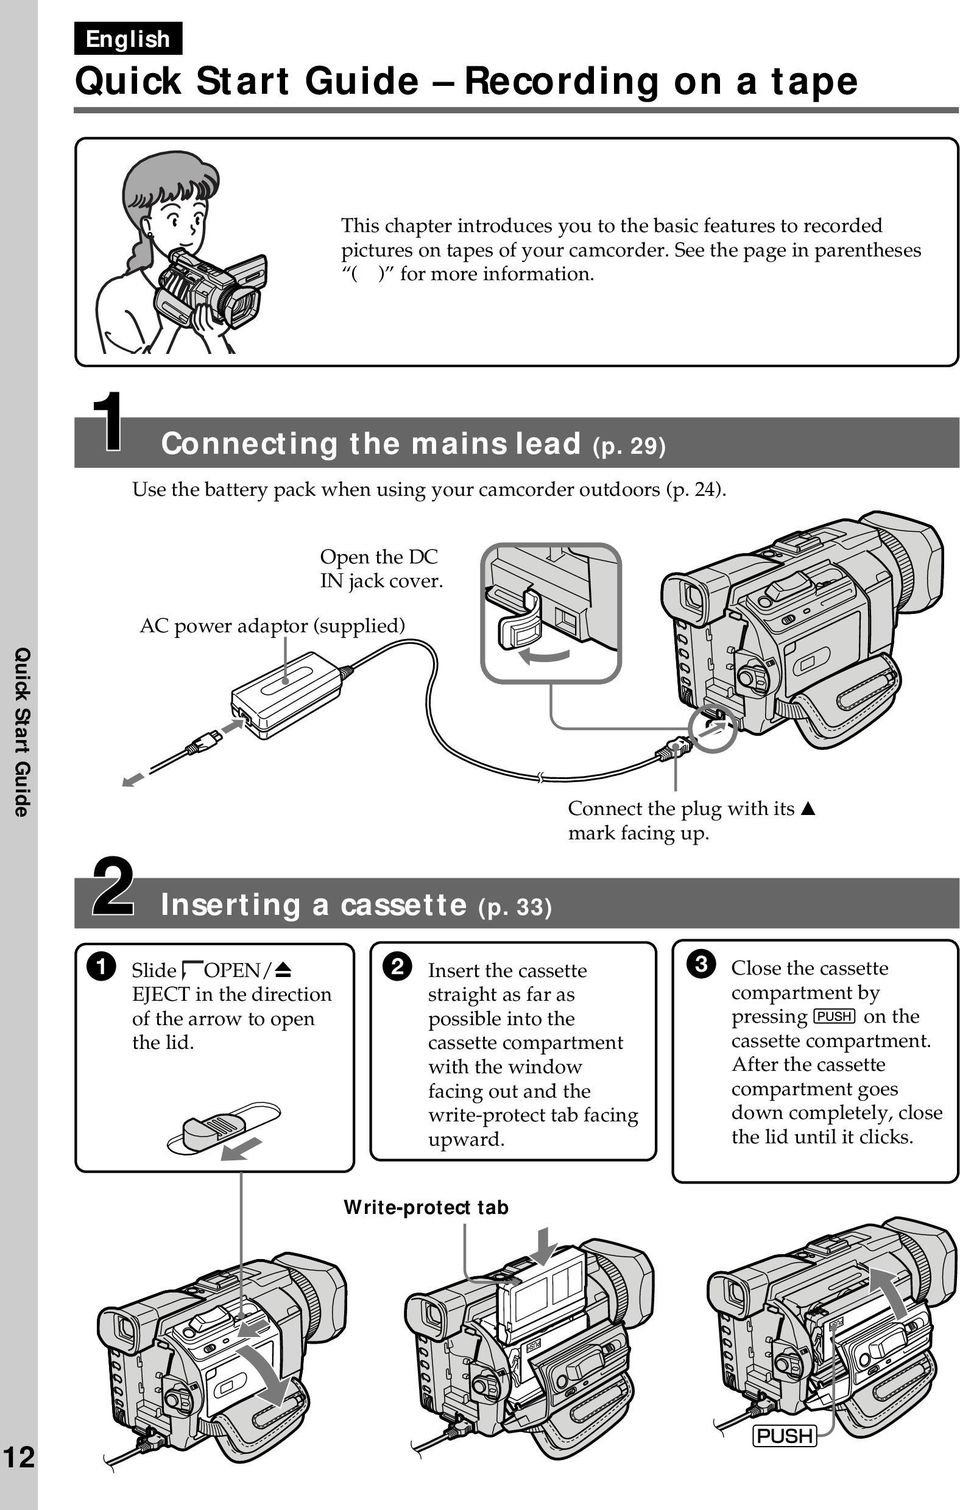 AC power adaptor (supplied) Quick Start Guide Connect the plug with its v mark facing up. Inserting a cassette (p. 33) 1 Slide OPEN/Z EJECT in the direction of the arrow to open the lid.